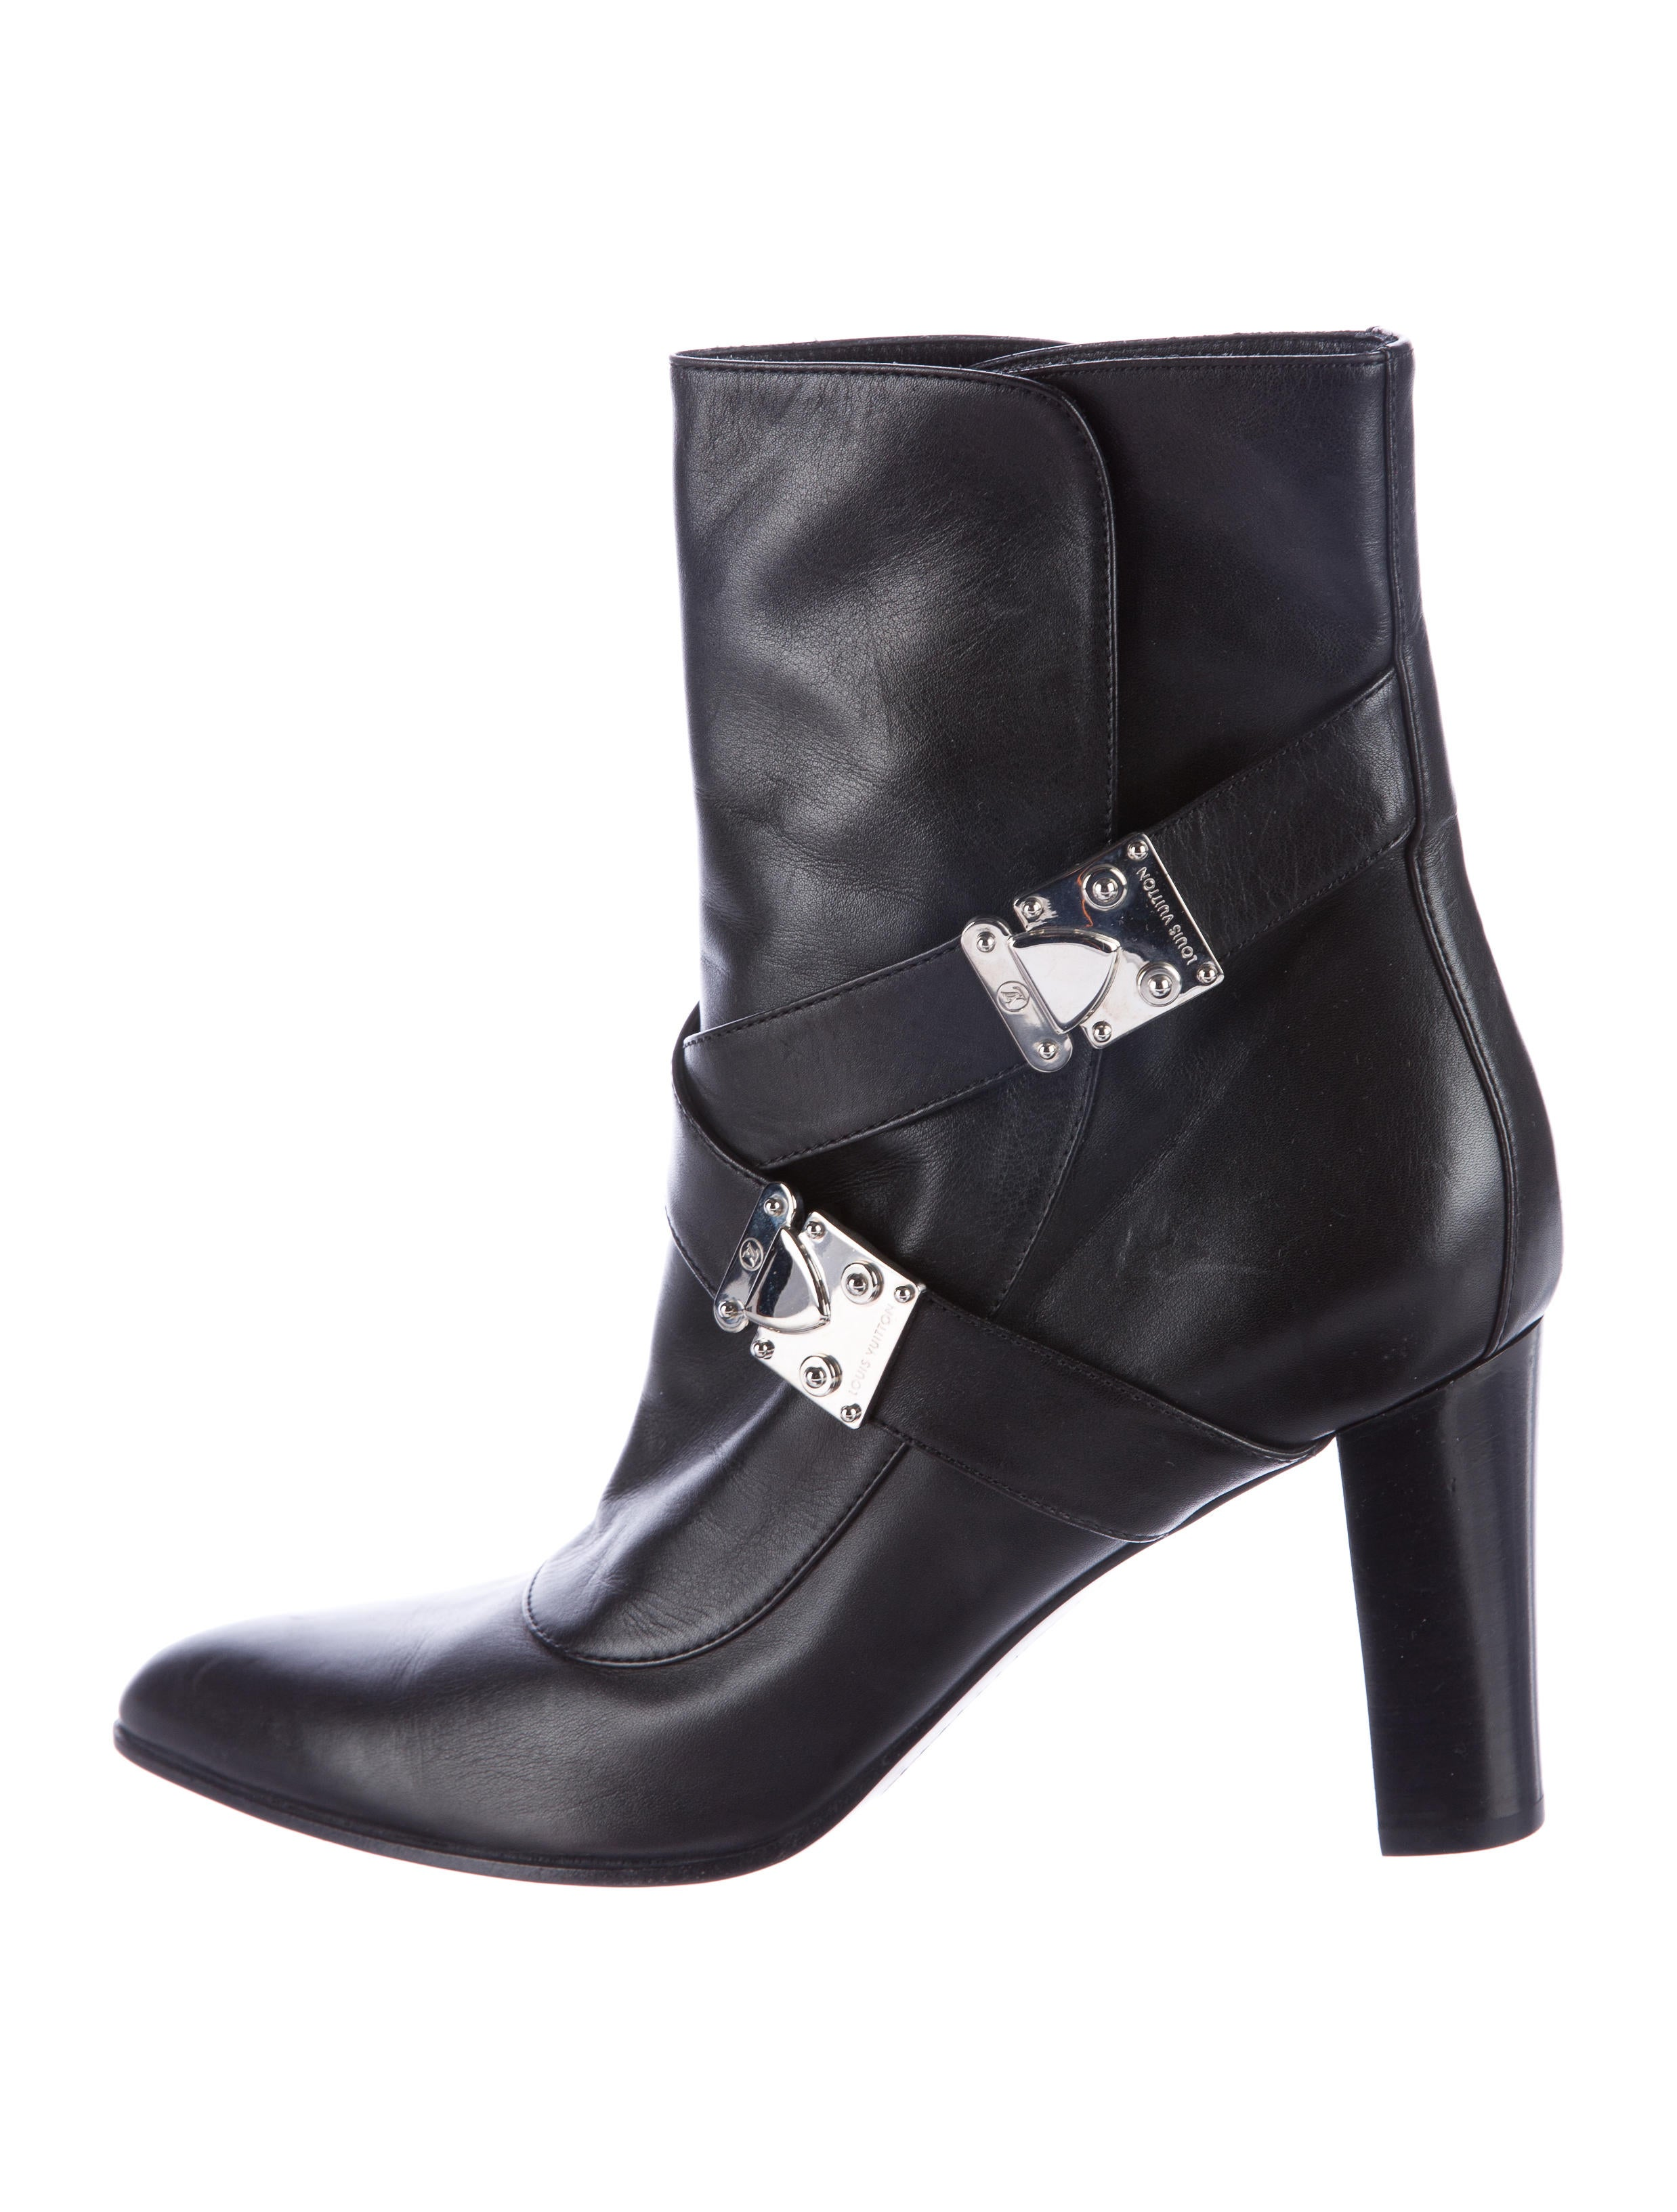 louis vuitton leather buckle ankle boots shoes